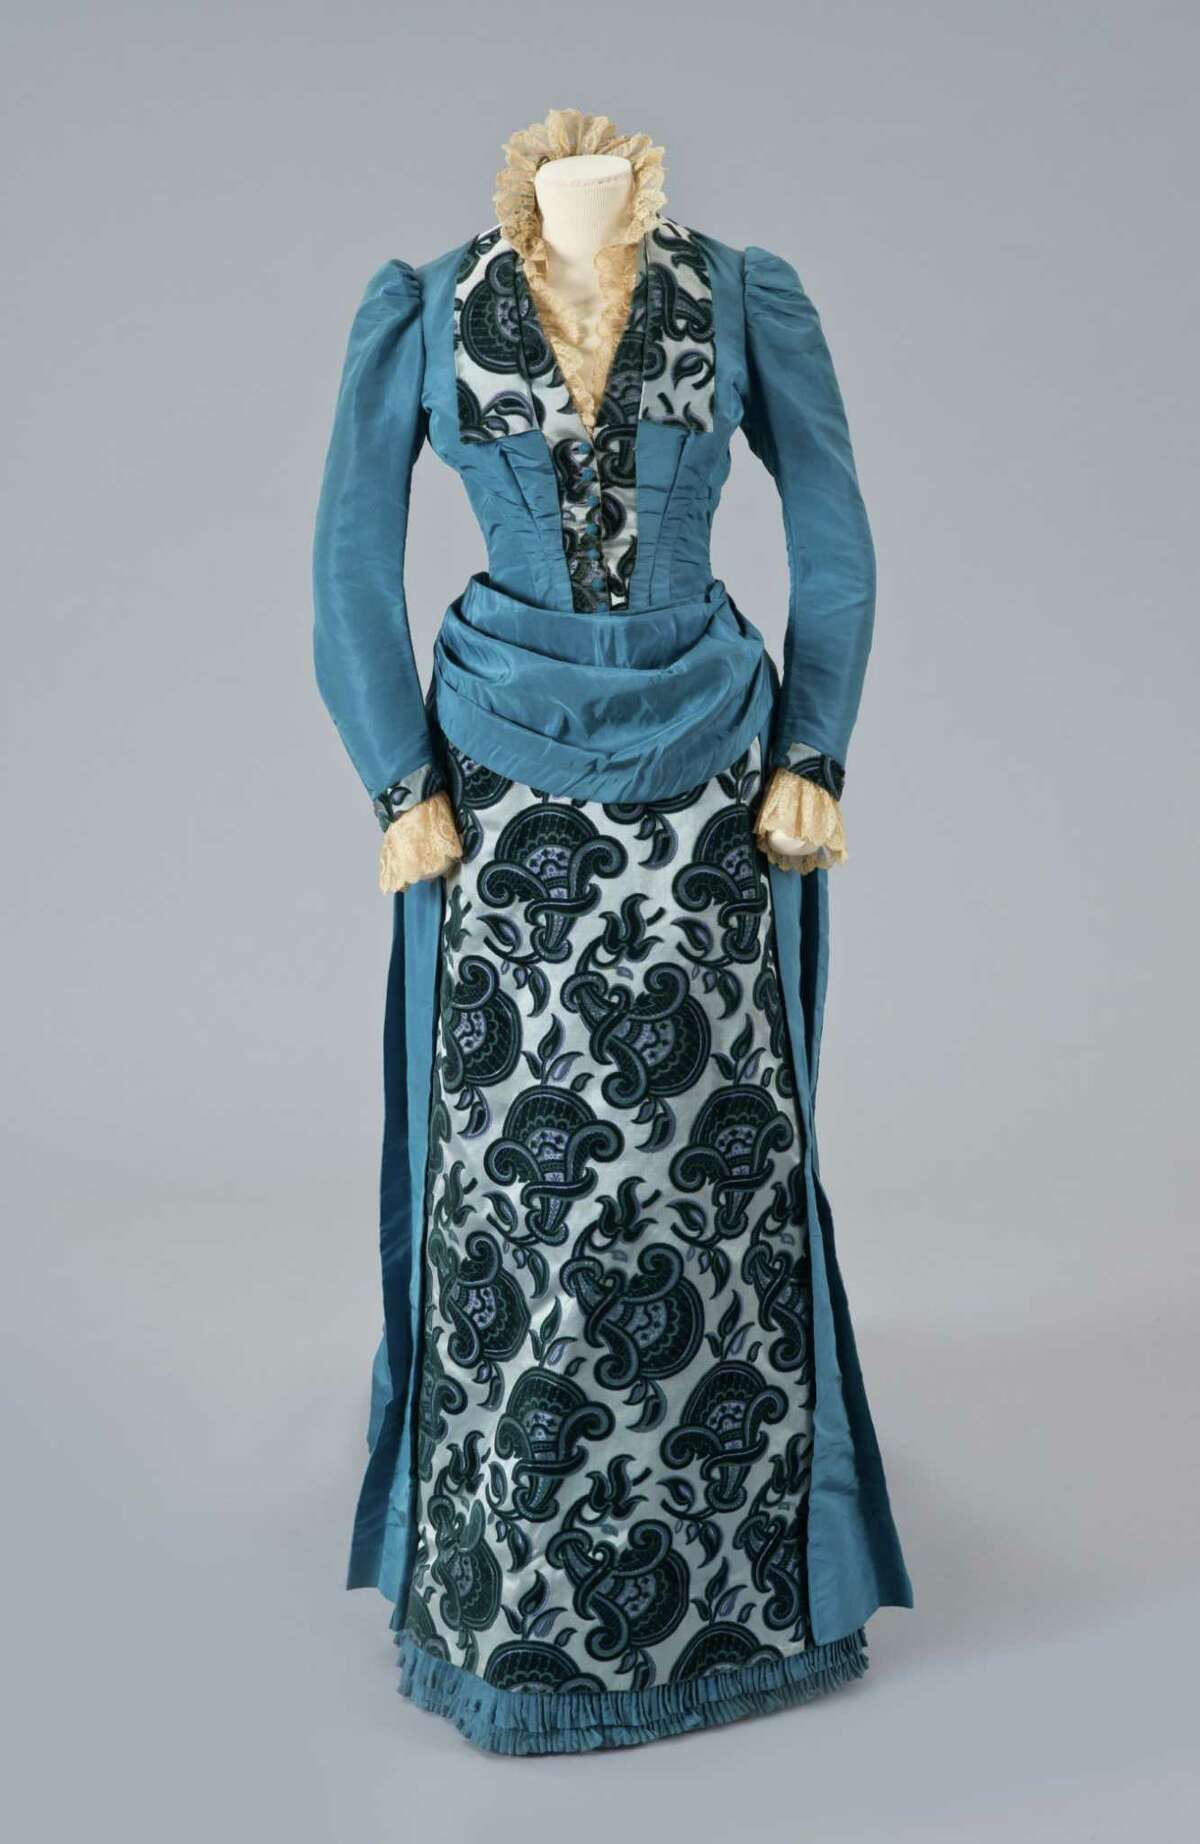 Blue Dress with Velvet Panel Label: Mme Amédée Francois / Robes & Confections / 76, Rue Truve des Petits Champs (Paris) Silk with silk velvet, lace c.1889 Gift of Eliza Ten Eyck Pruyn Robinson from the Estate of Margaret and Foster Pruyn (Image from the Albany Institute of History and Art / Photo by Michael Fredericks)